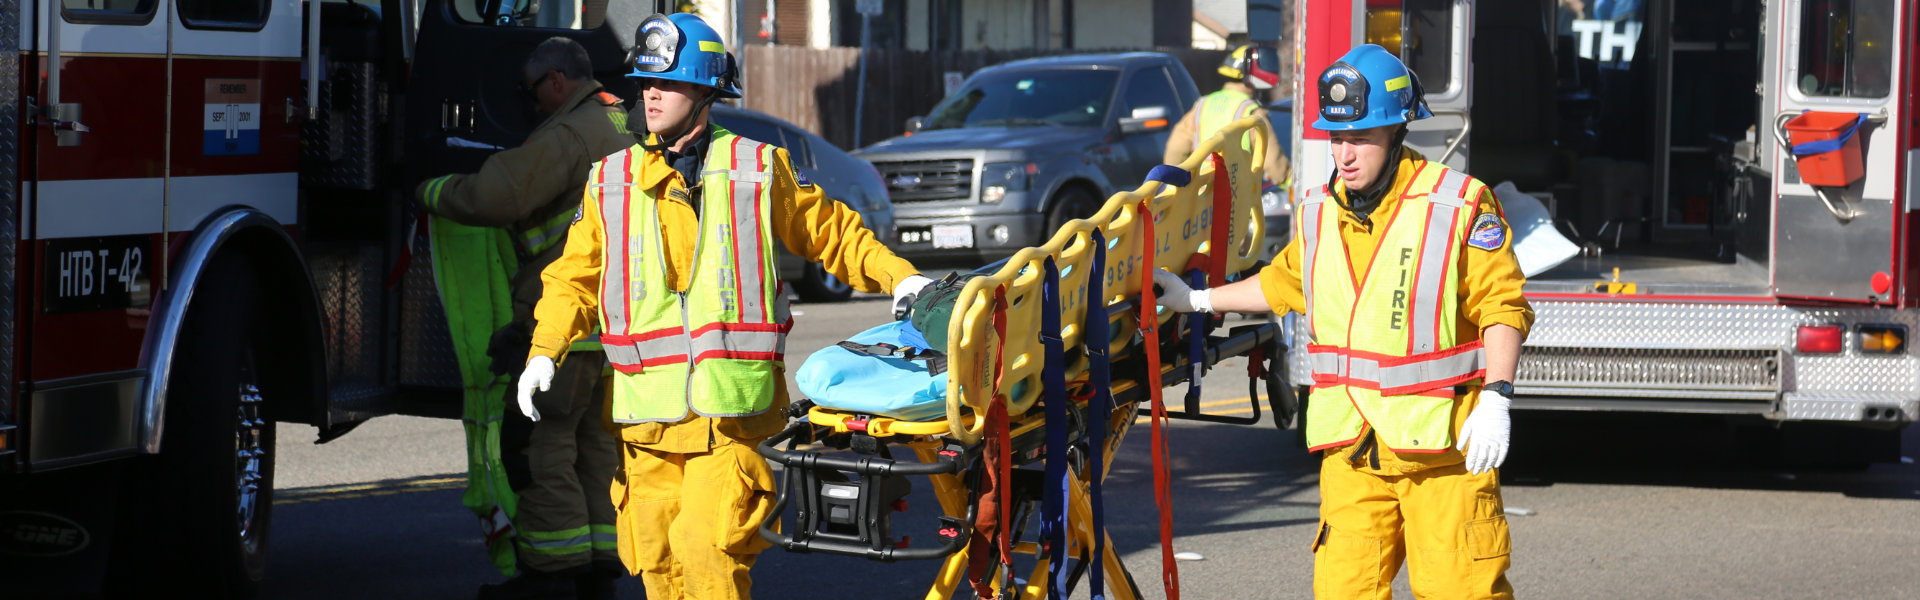 paramedics carry stretchers